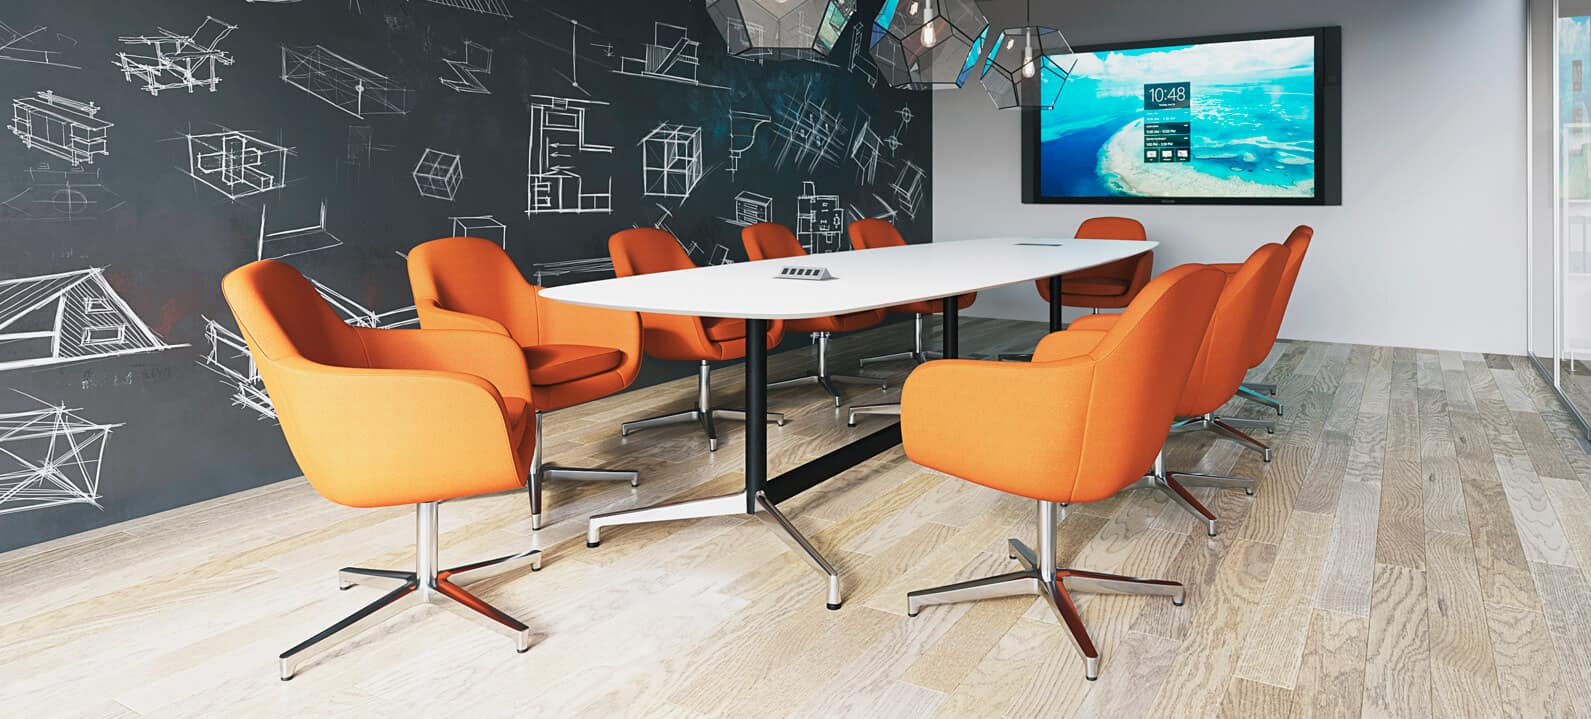 Conference Table Designs 11